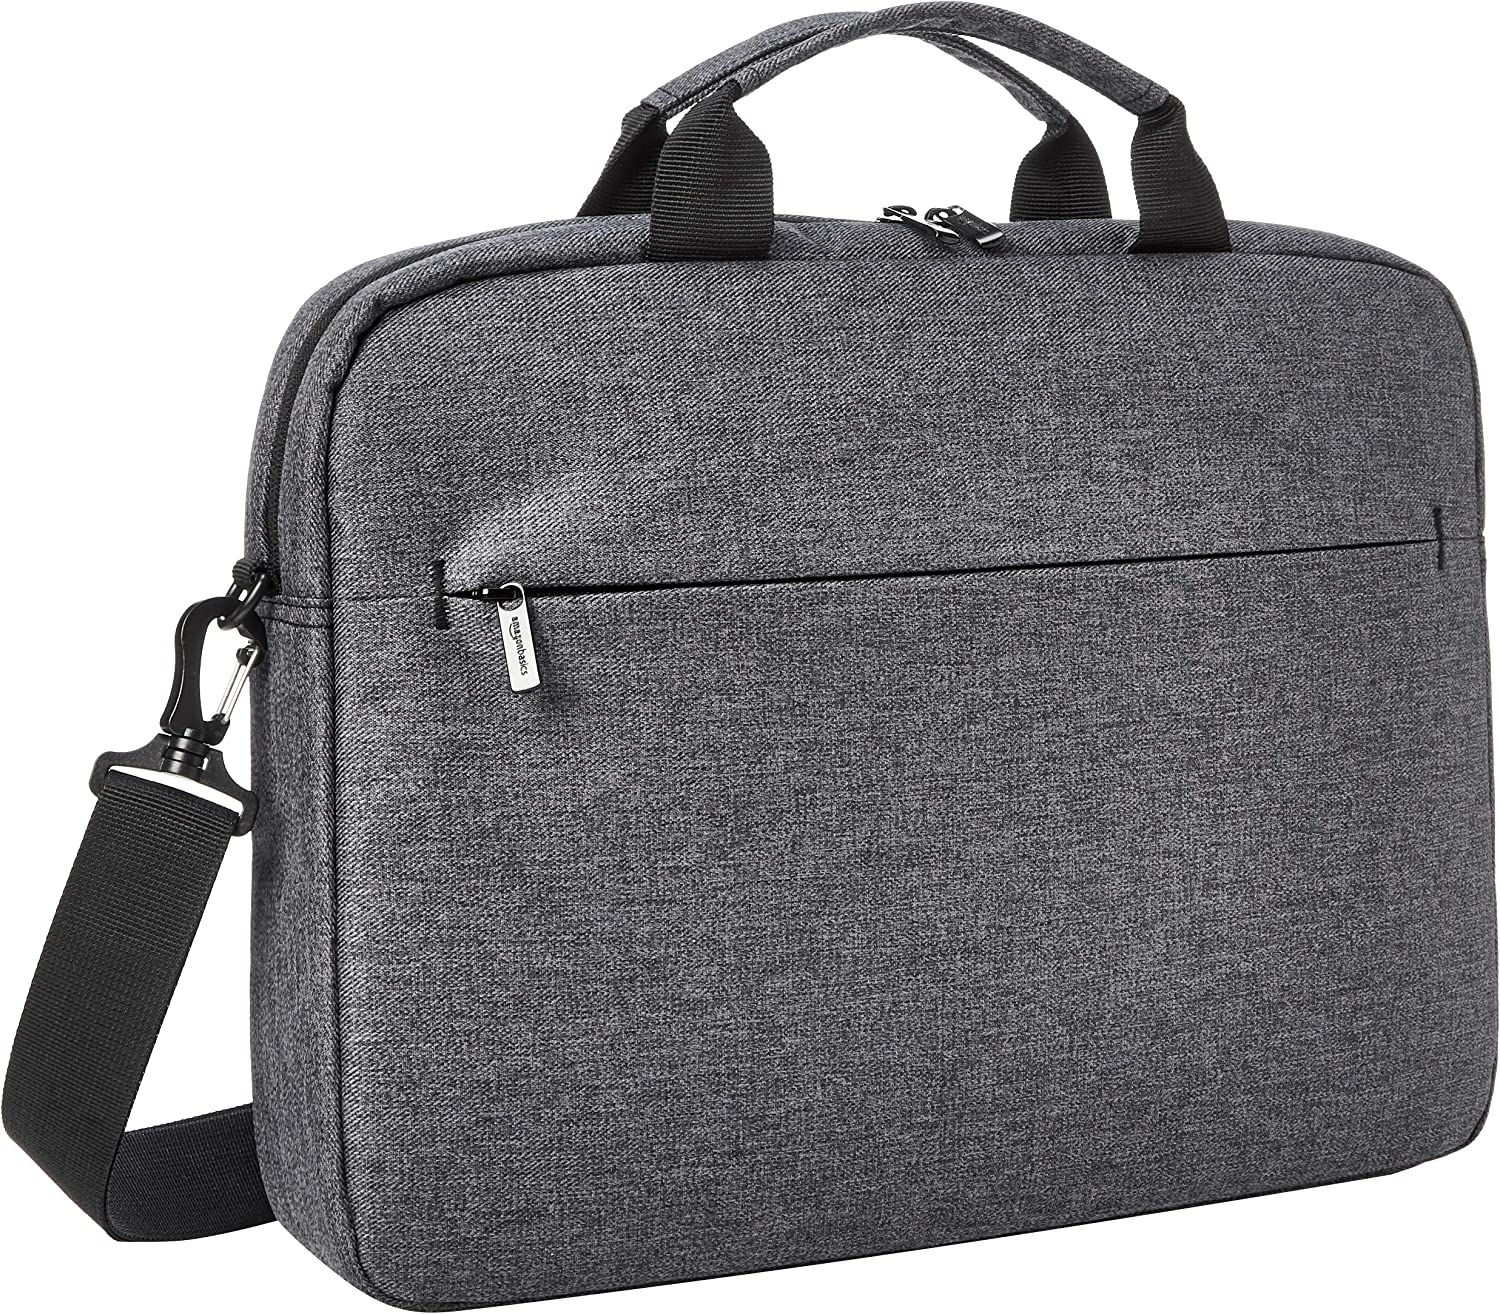 "AmazonBasics Urban Laptop and Tablet Case, 15"", Grey"